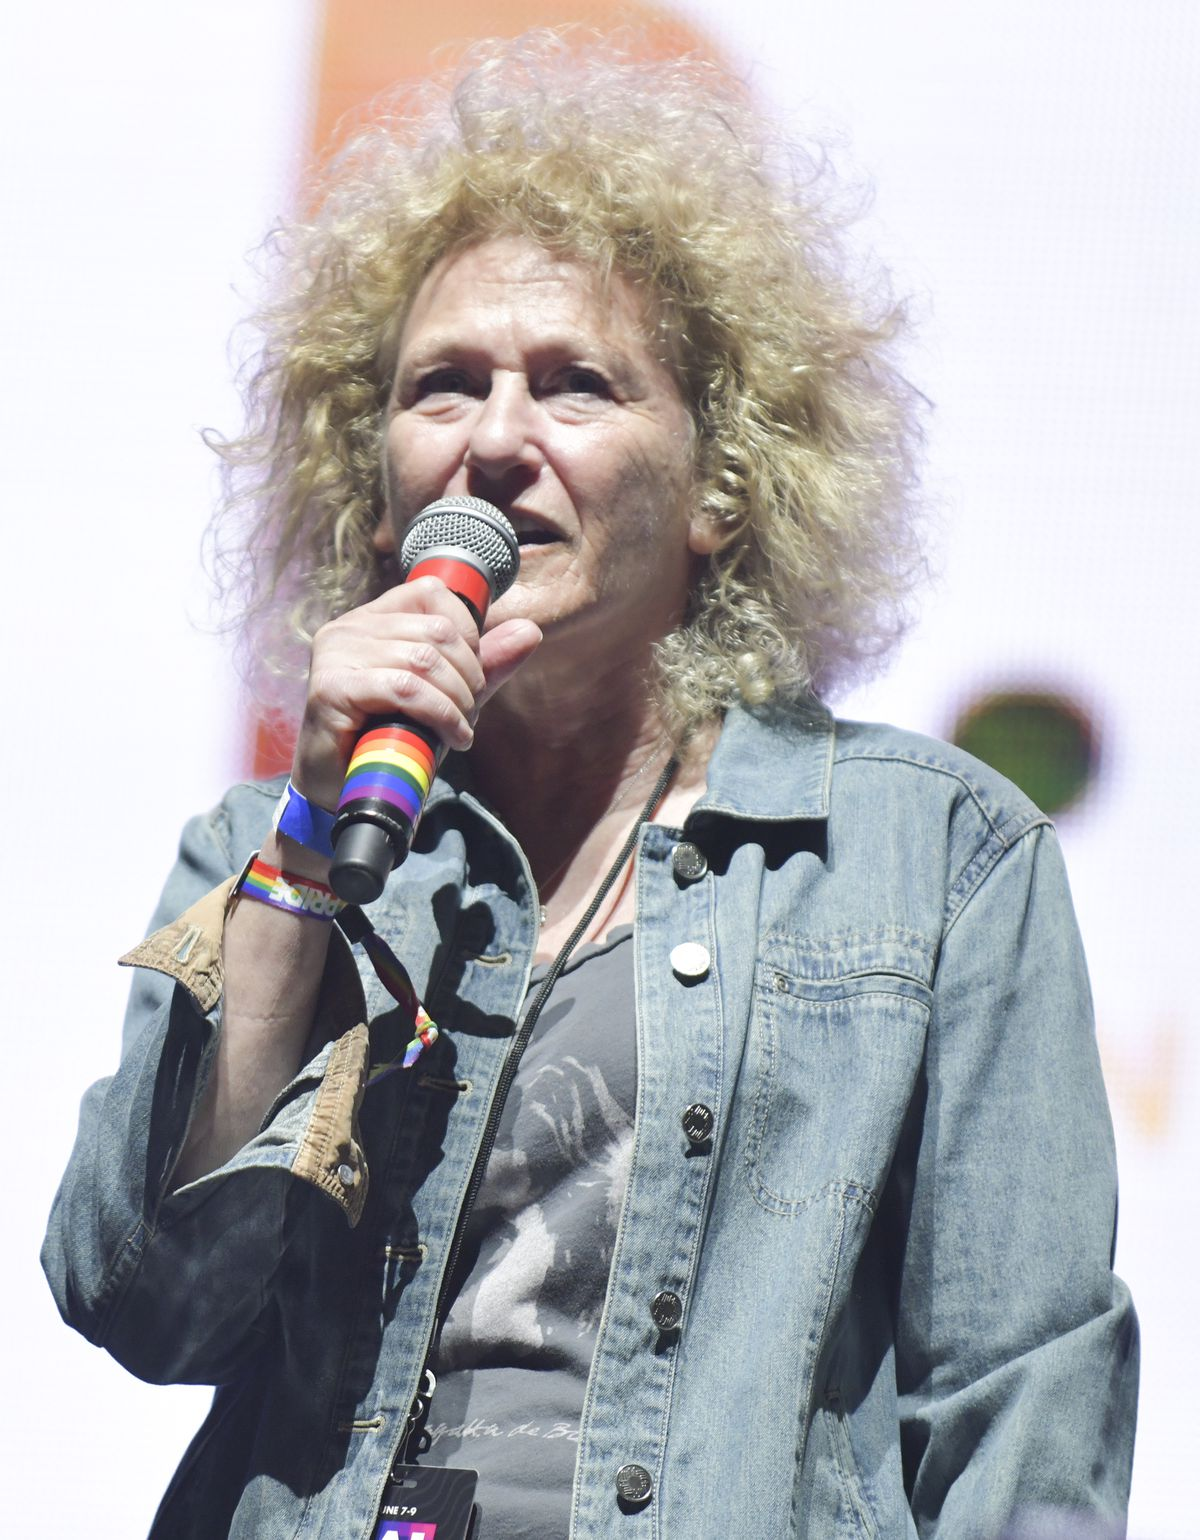 West Hollywood City Council member and now mayor Lauren Meister holding rainbow microphone wearing a jean jacket speaking at Pride 2019.